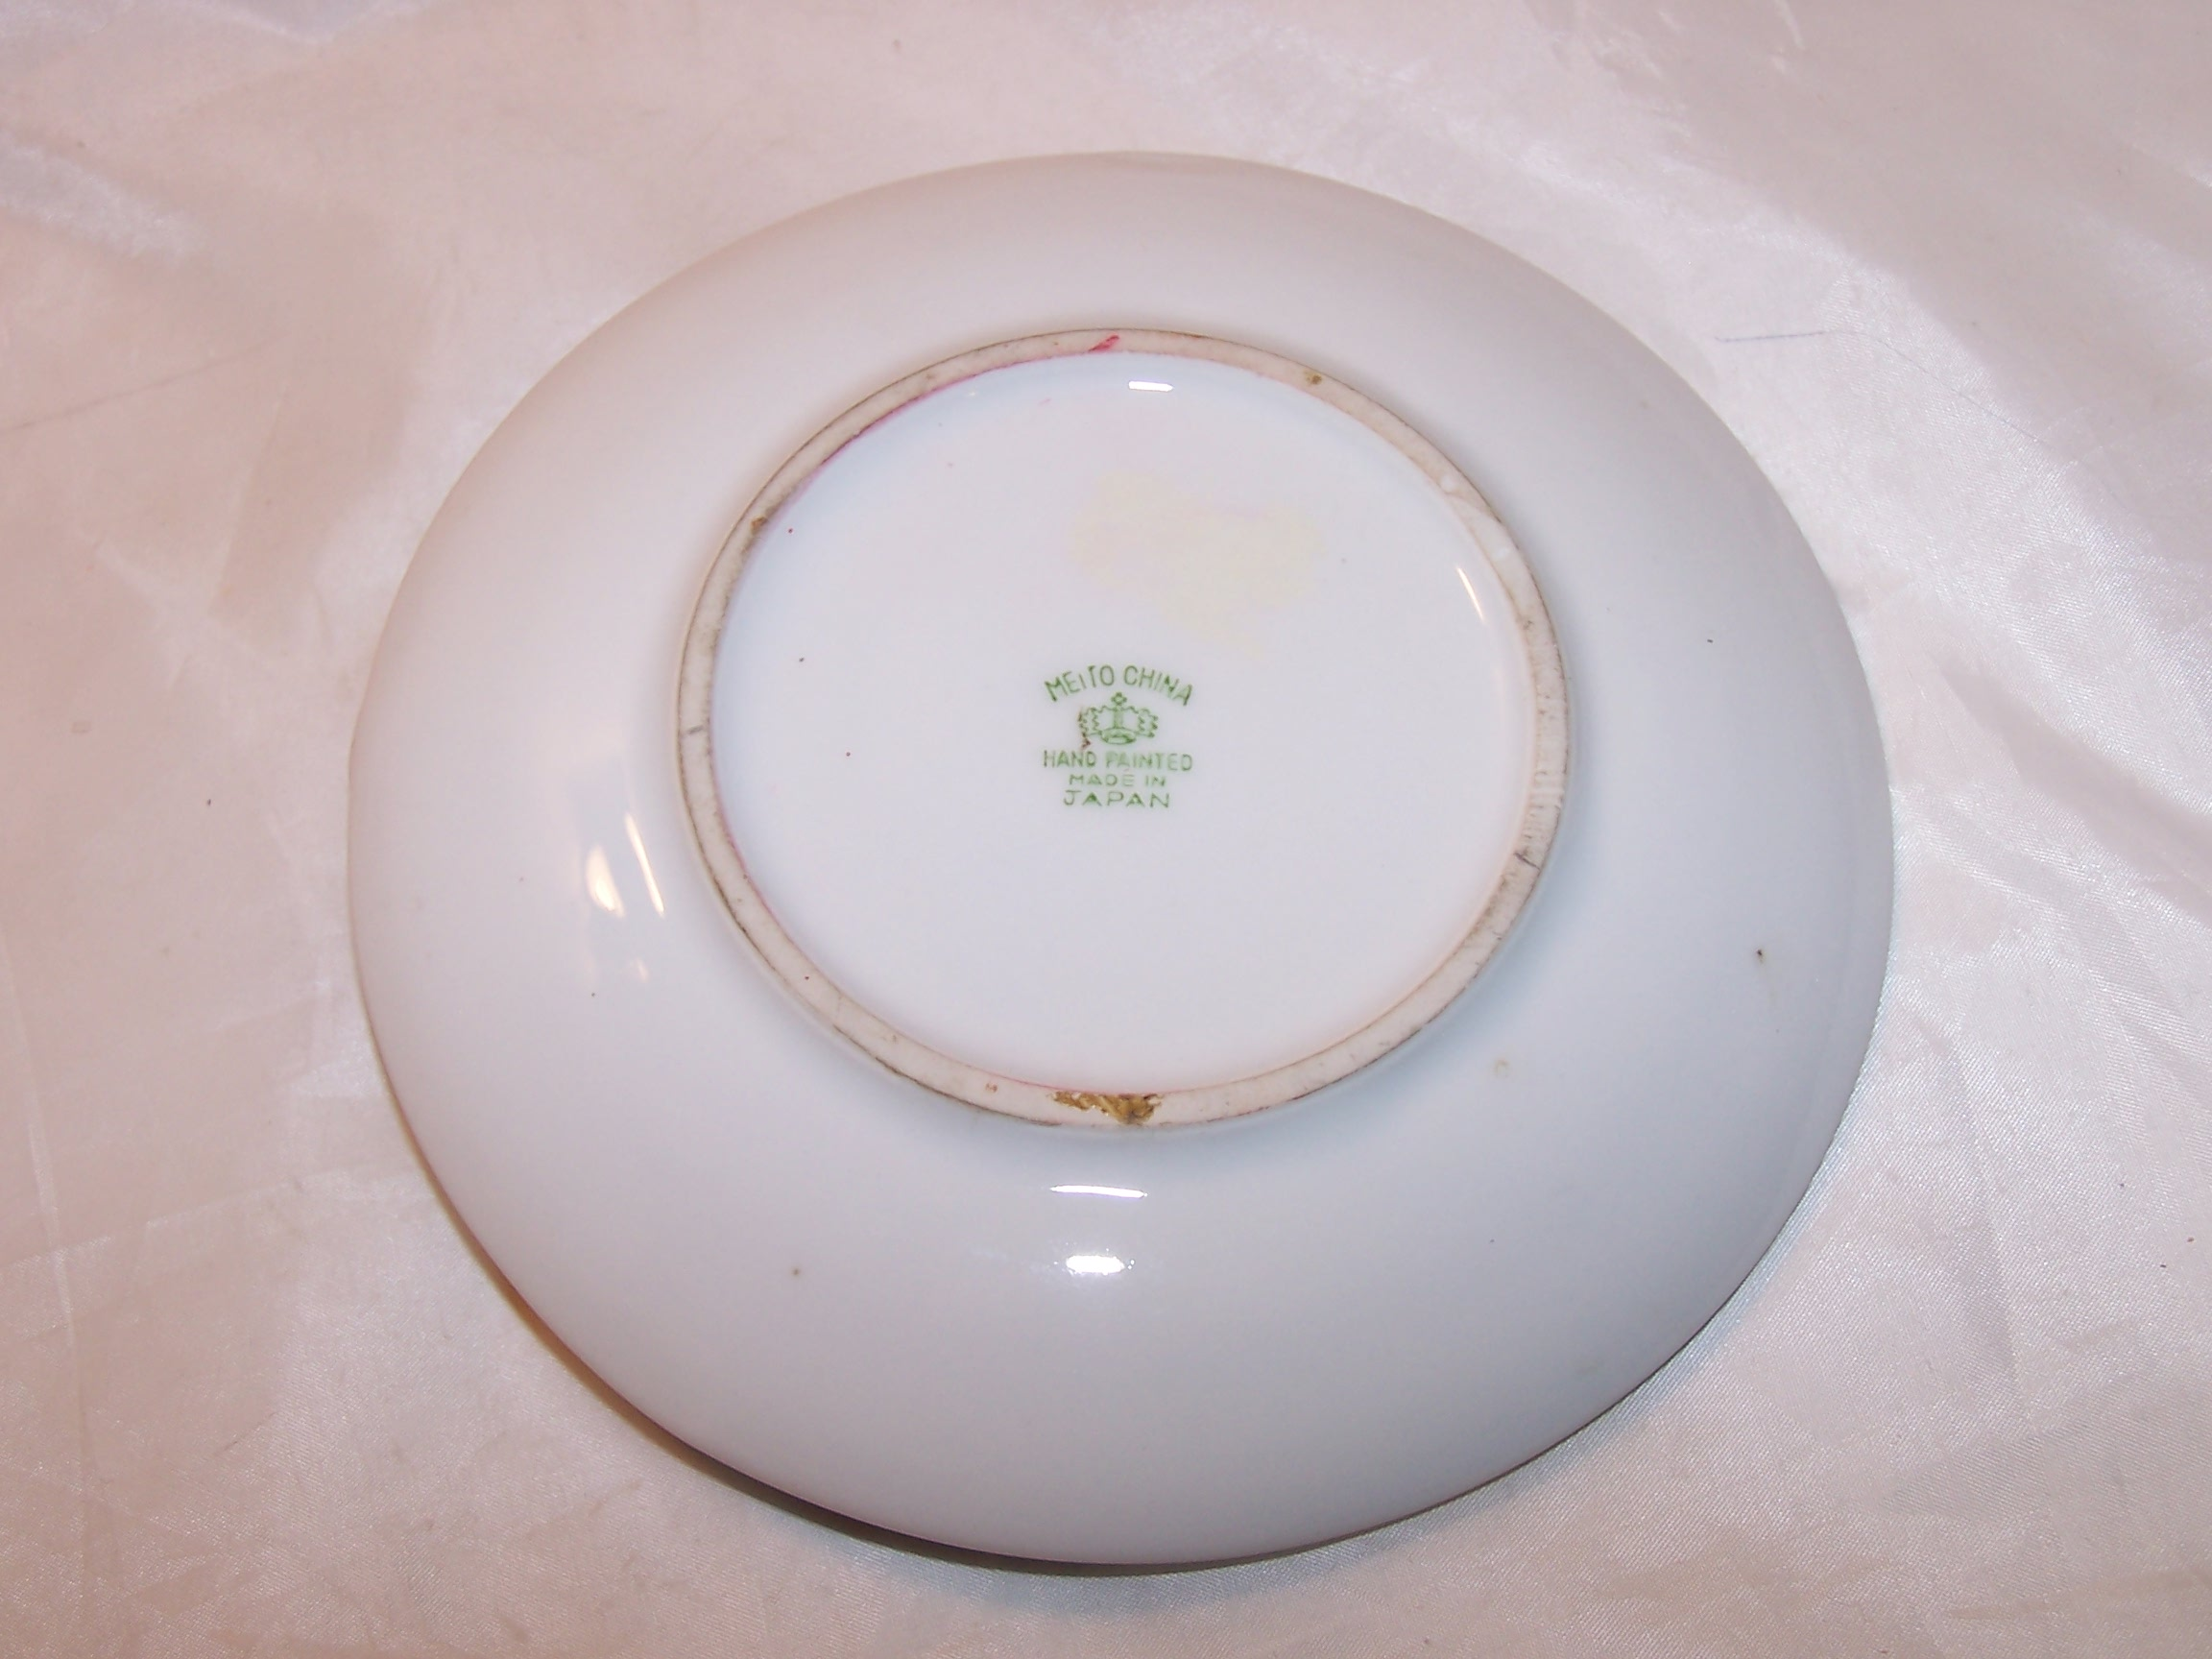 Image 2 of Meito China Lemon Server Plate, Hand Painted, Japan